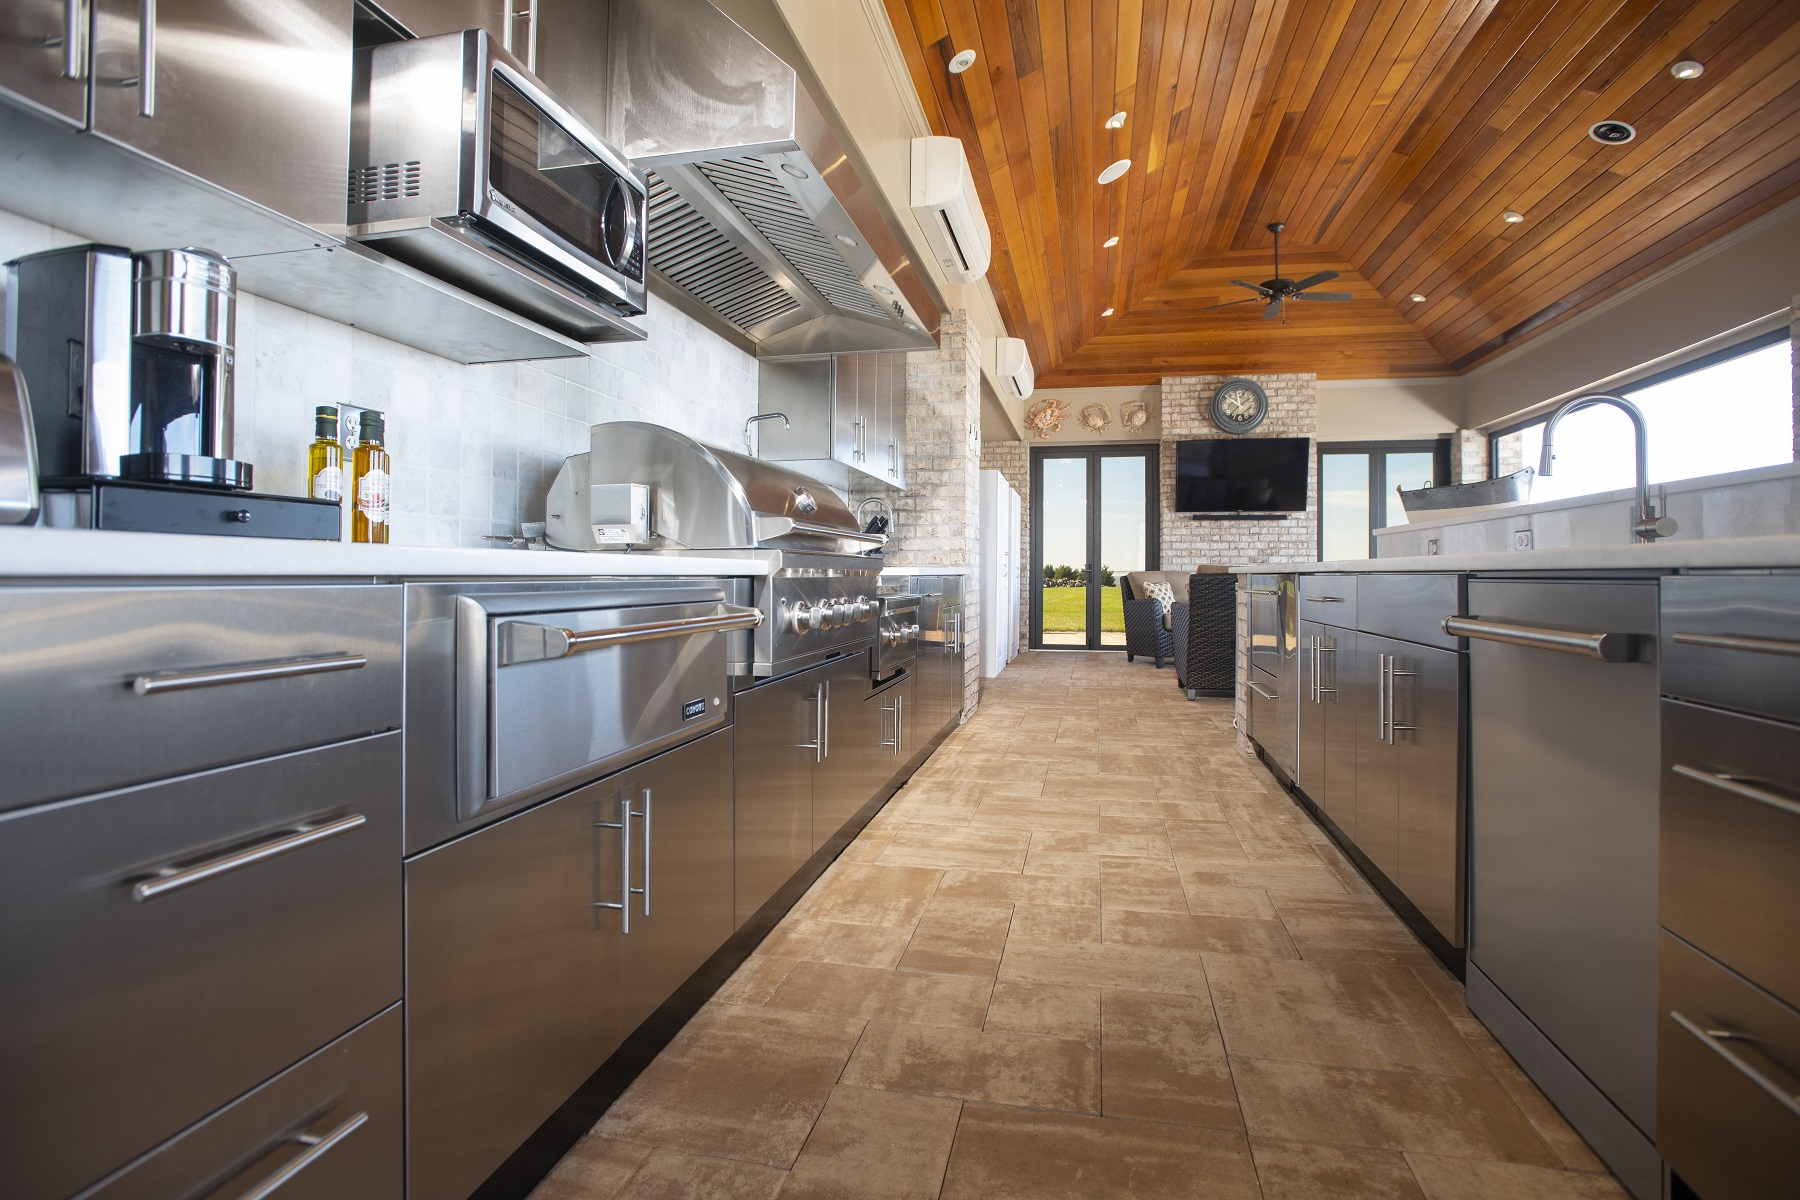 danver_cabinets_stainless_steel_poolhouse_kitchen (4)